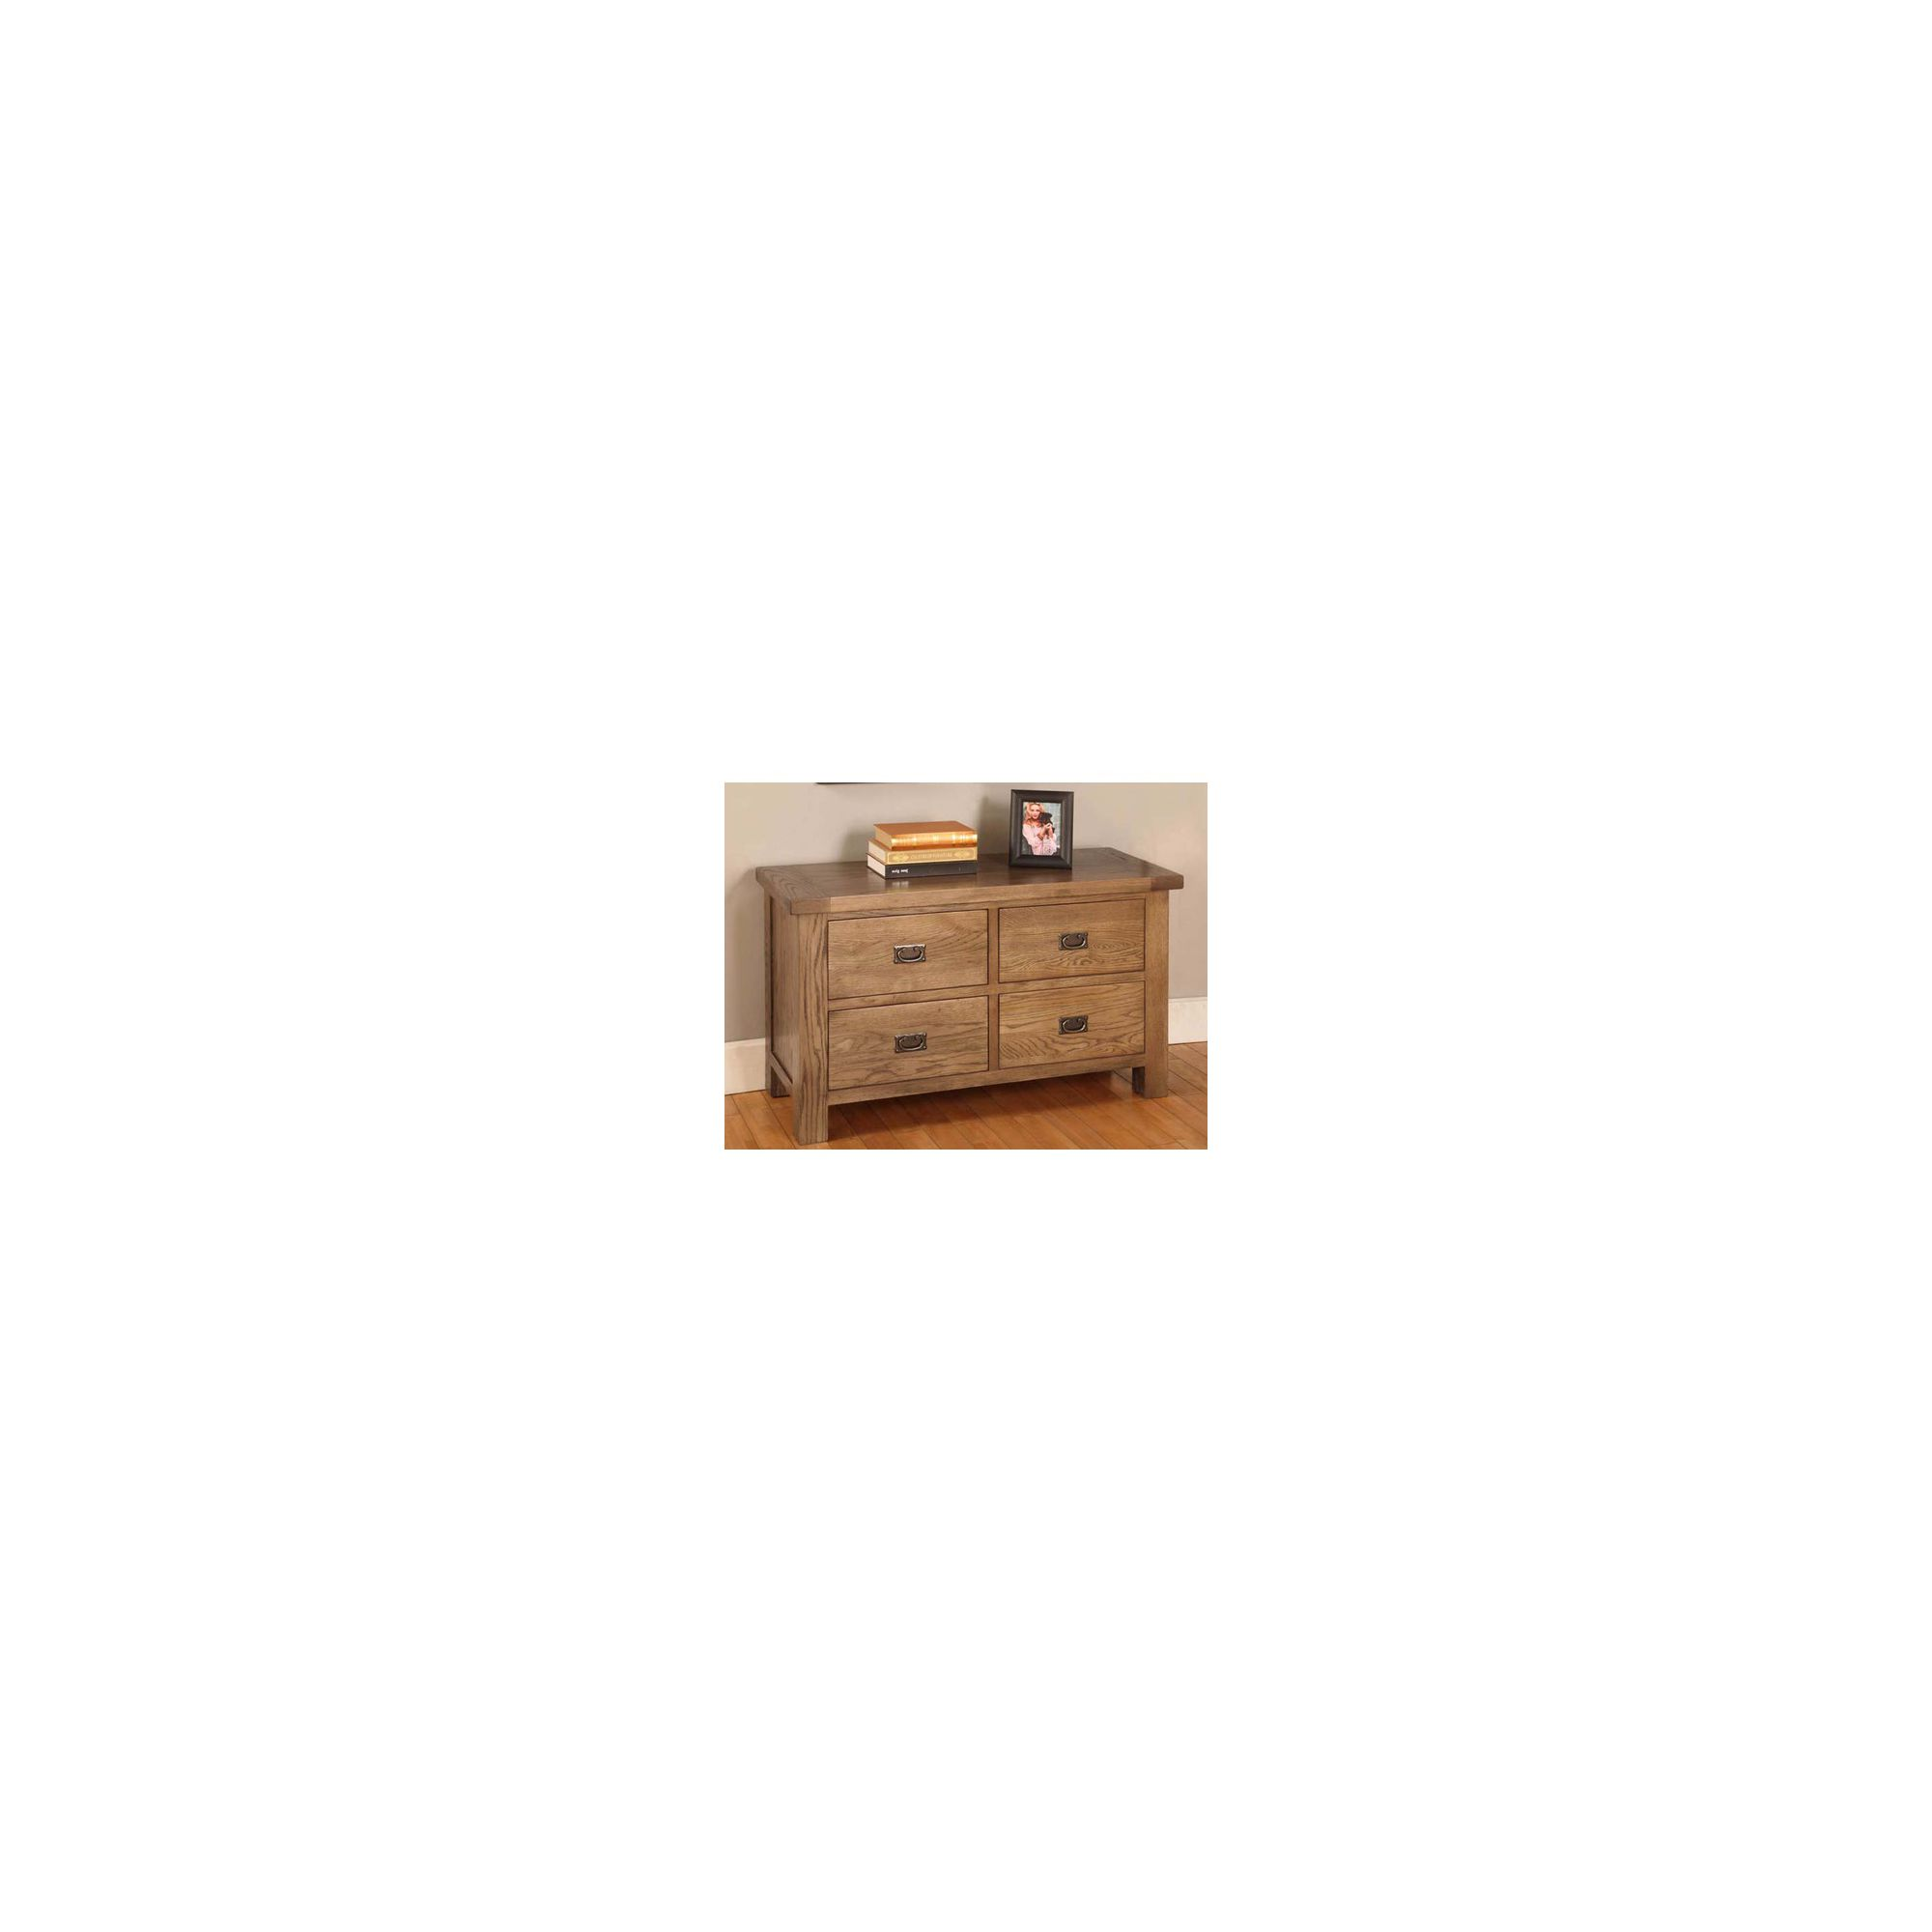 Hawkshead Brooklyn Four Drawers Chest in Rich Patina at Tesco Direct